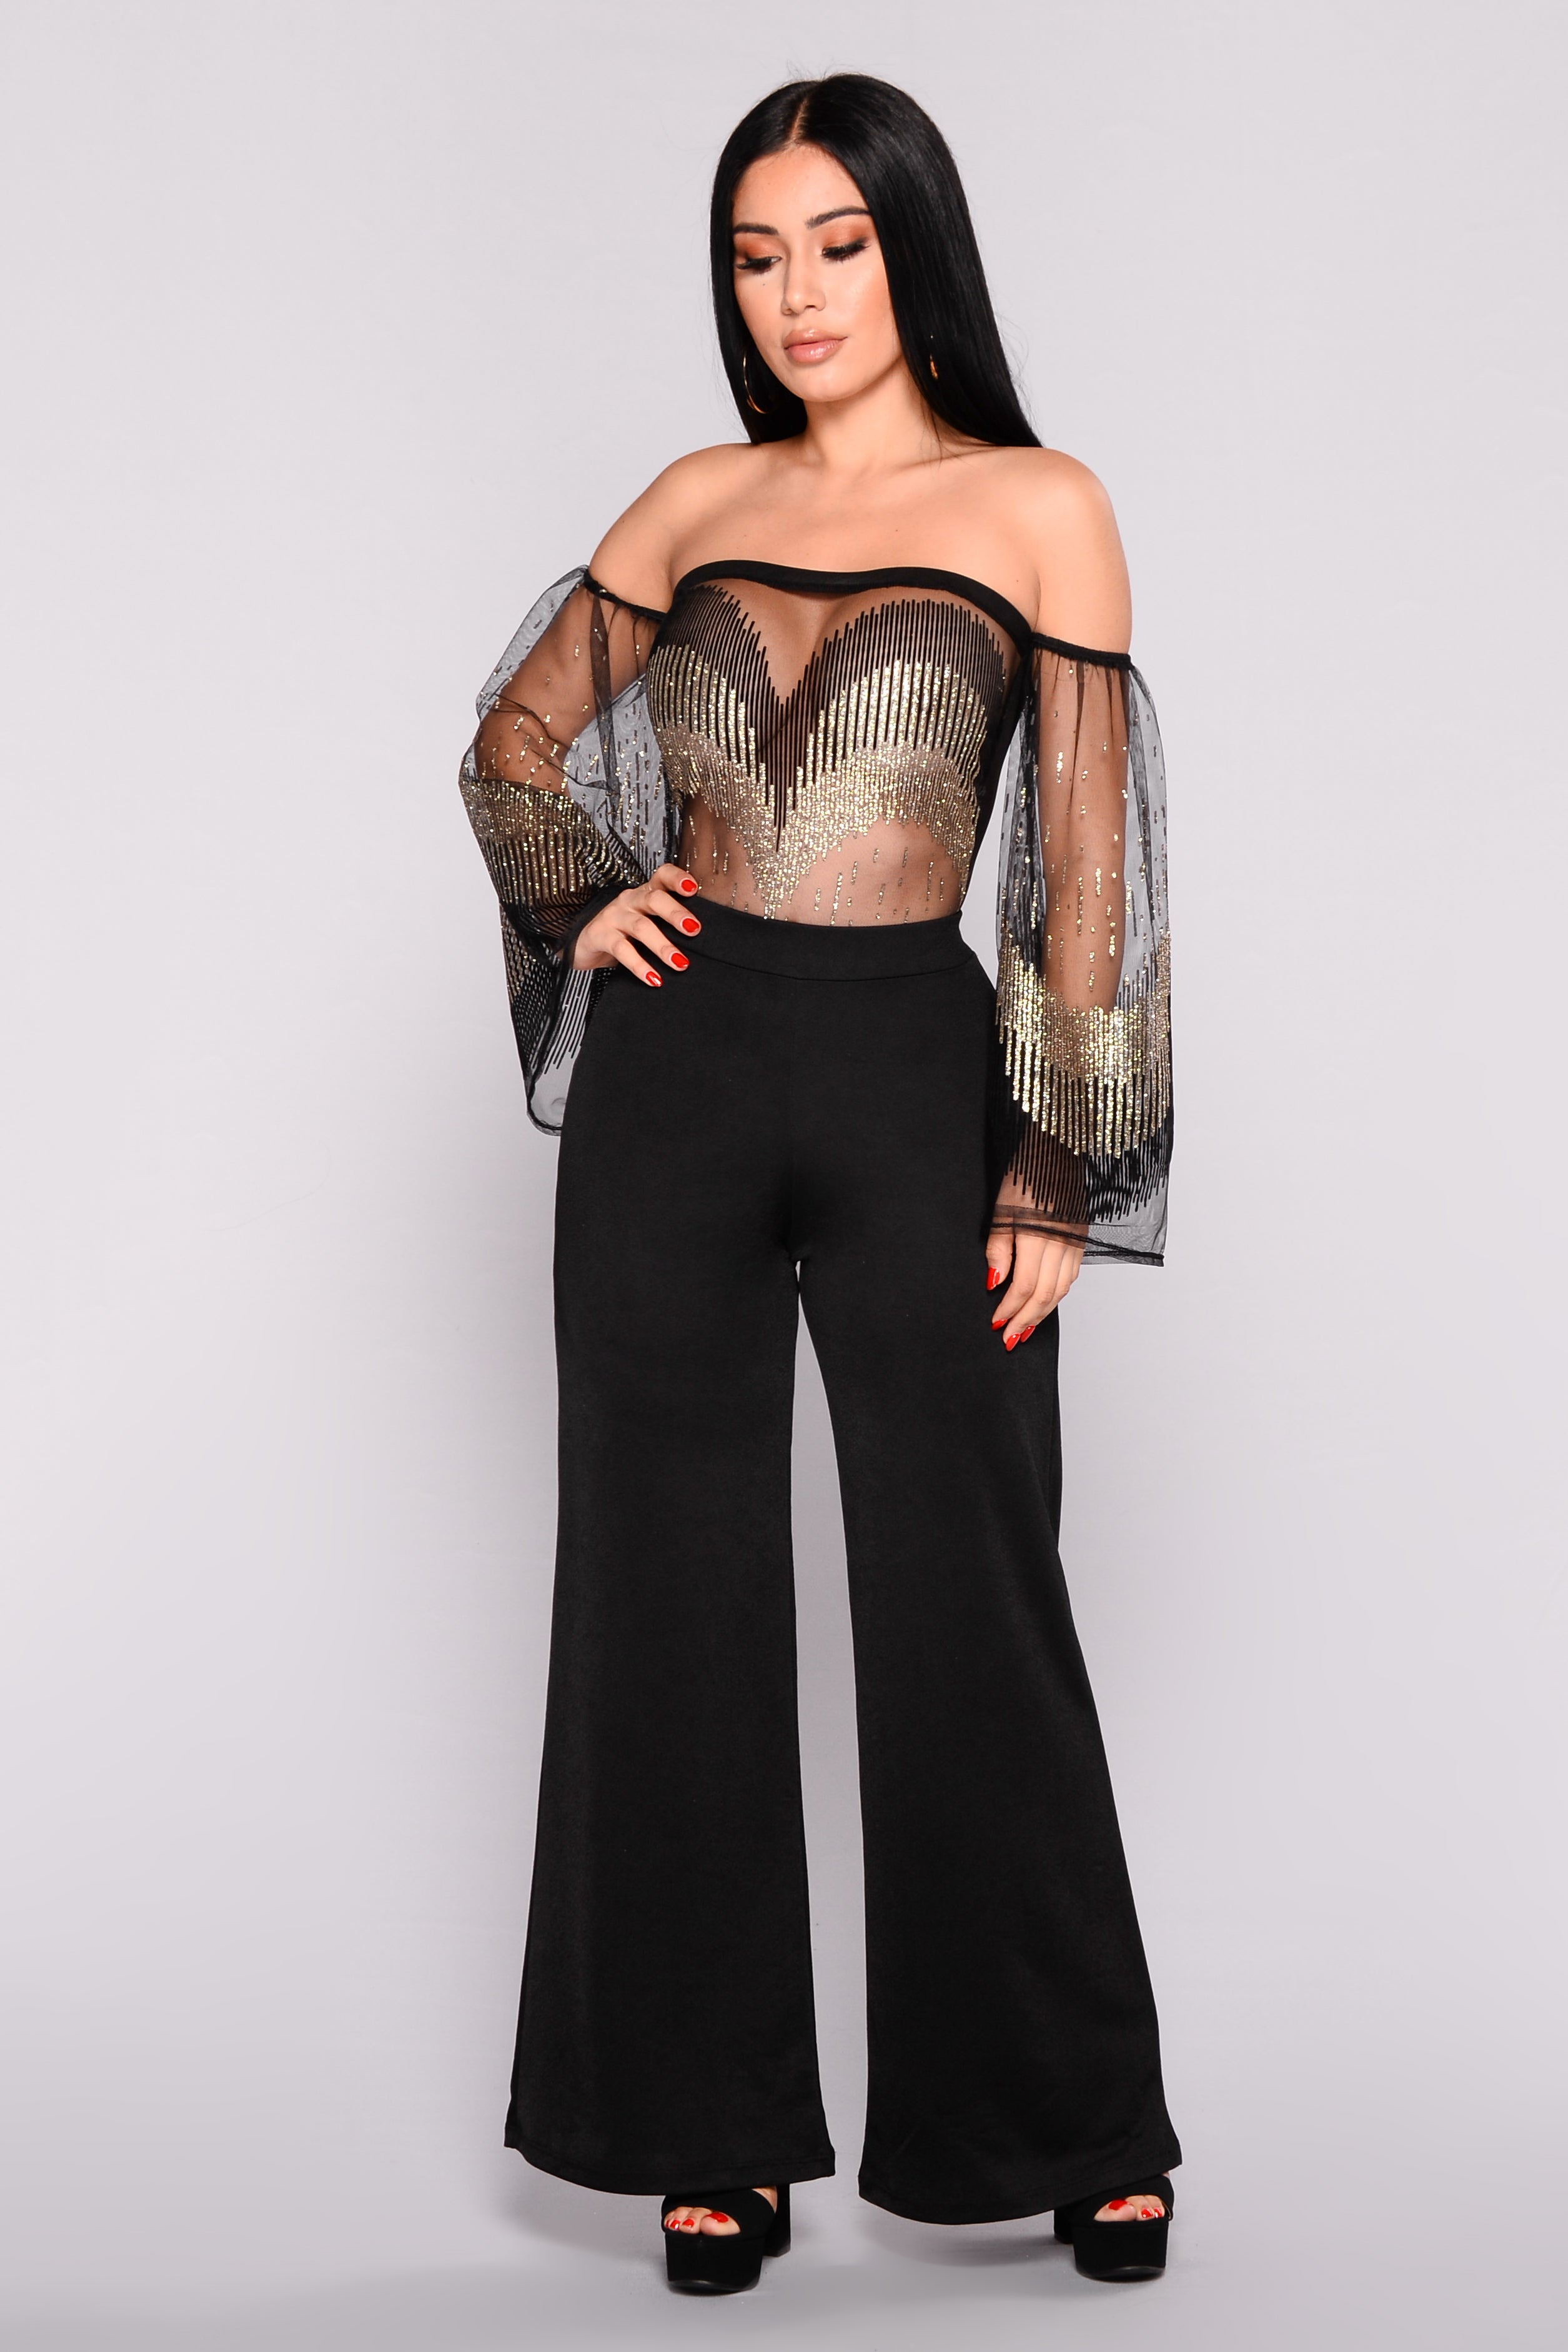 4ec45c1b09 Chleo Off Shoulder Mesh Bodysuit - Black/Gold